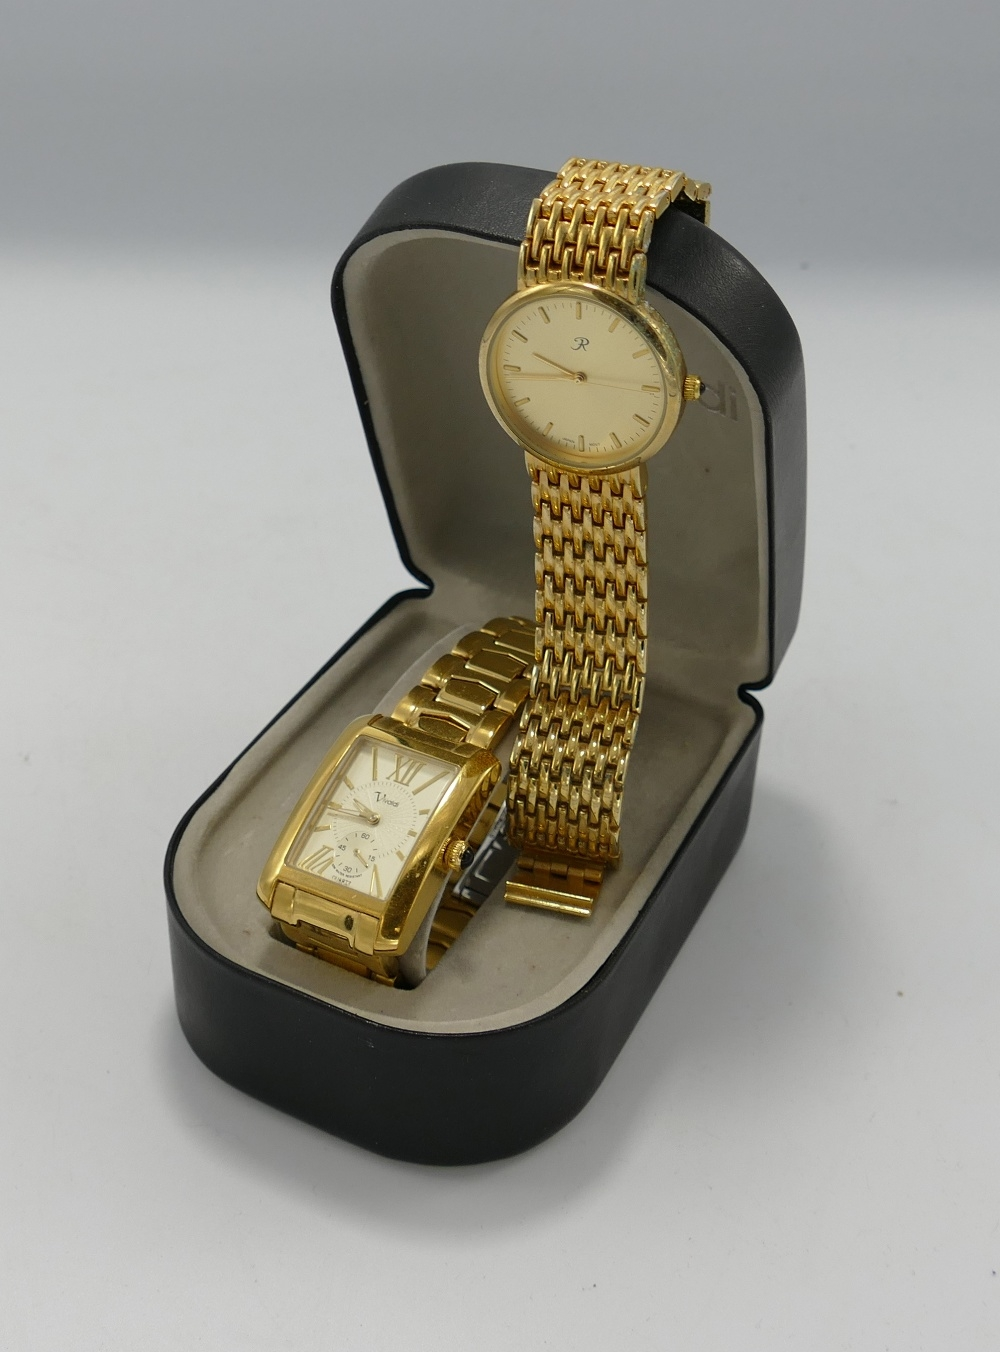 Vivaldi Boxed Gents Watch: together with similar item(2)